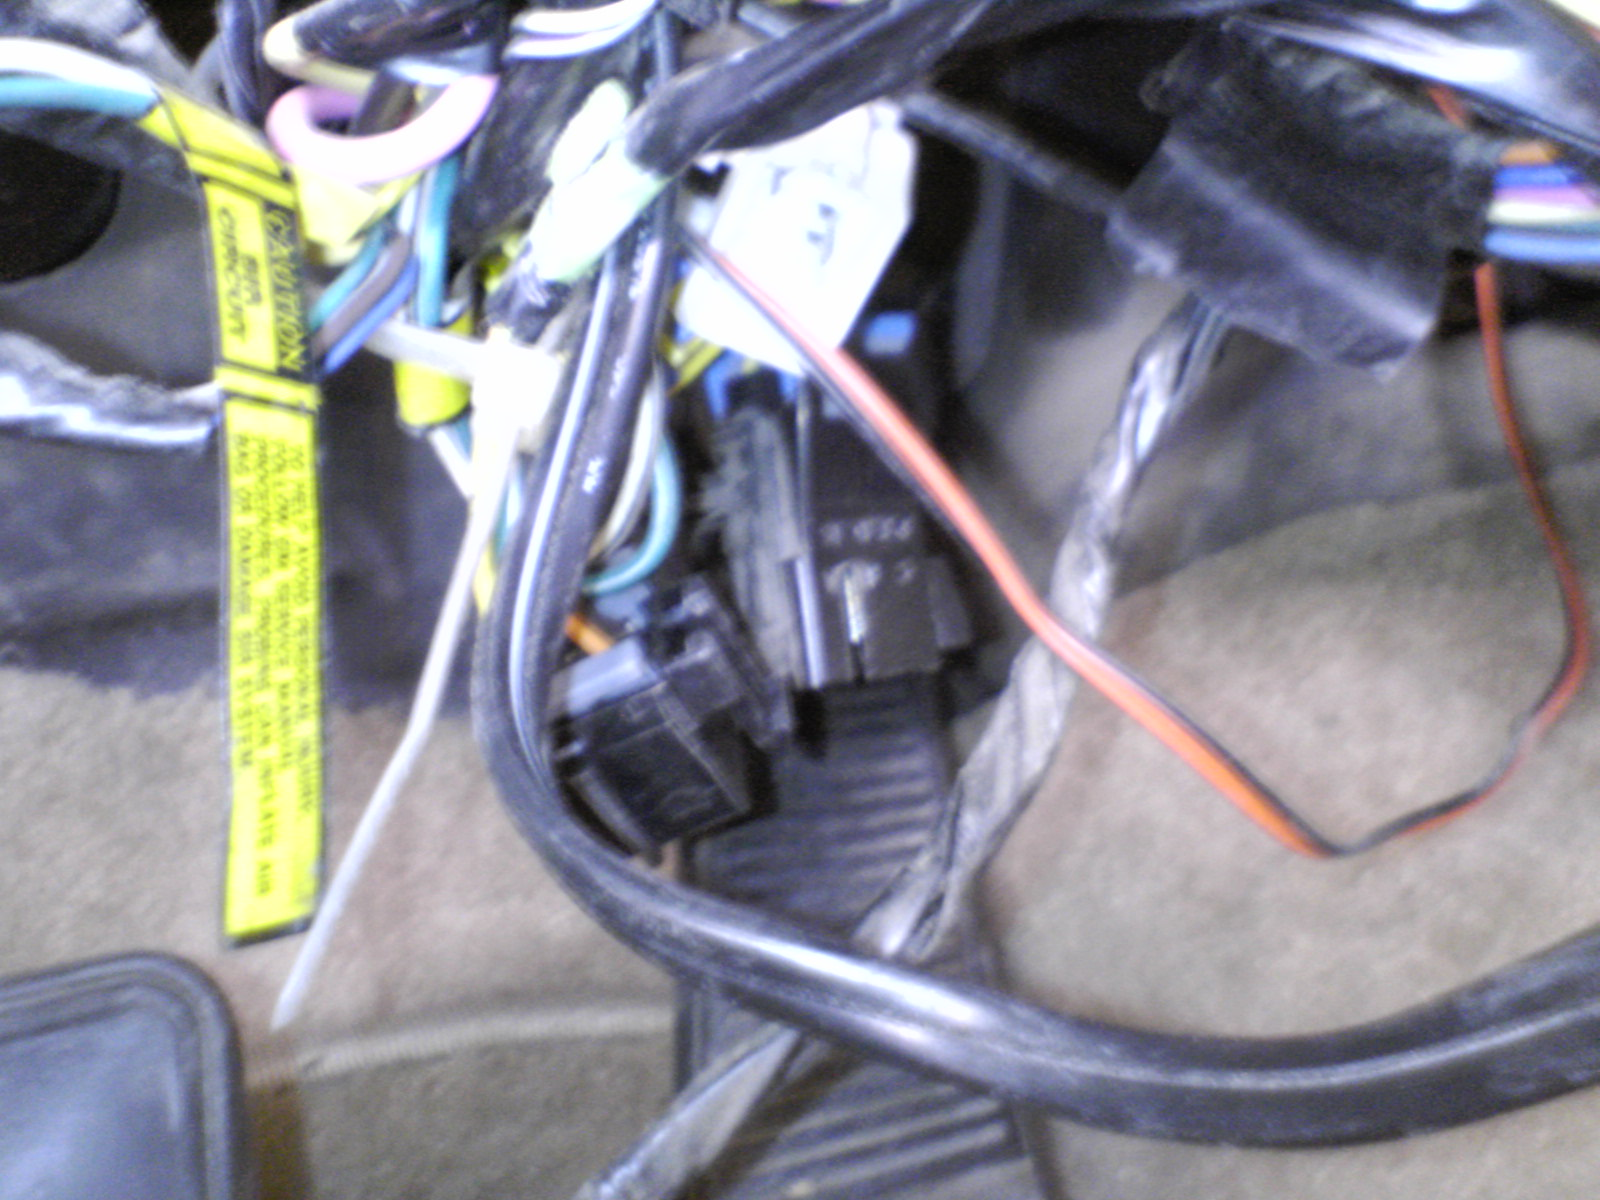 1995 Caprice Twilight Sentinel Install Ip Wiring Harness The Two Wires From Switch And One Headlight Into White Connector Matching Colors On